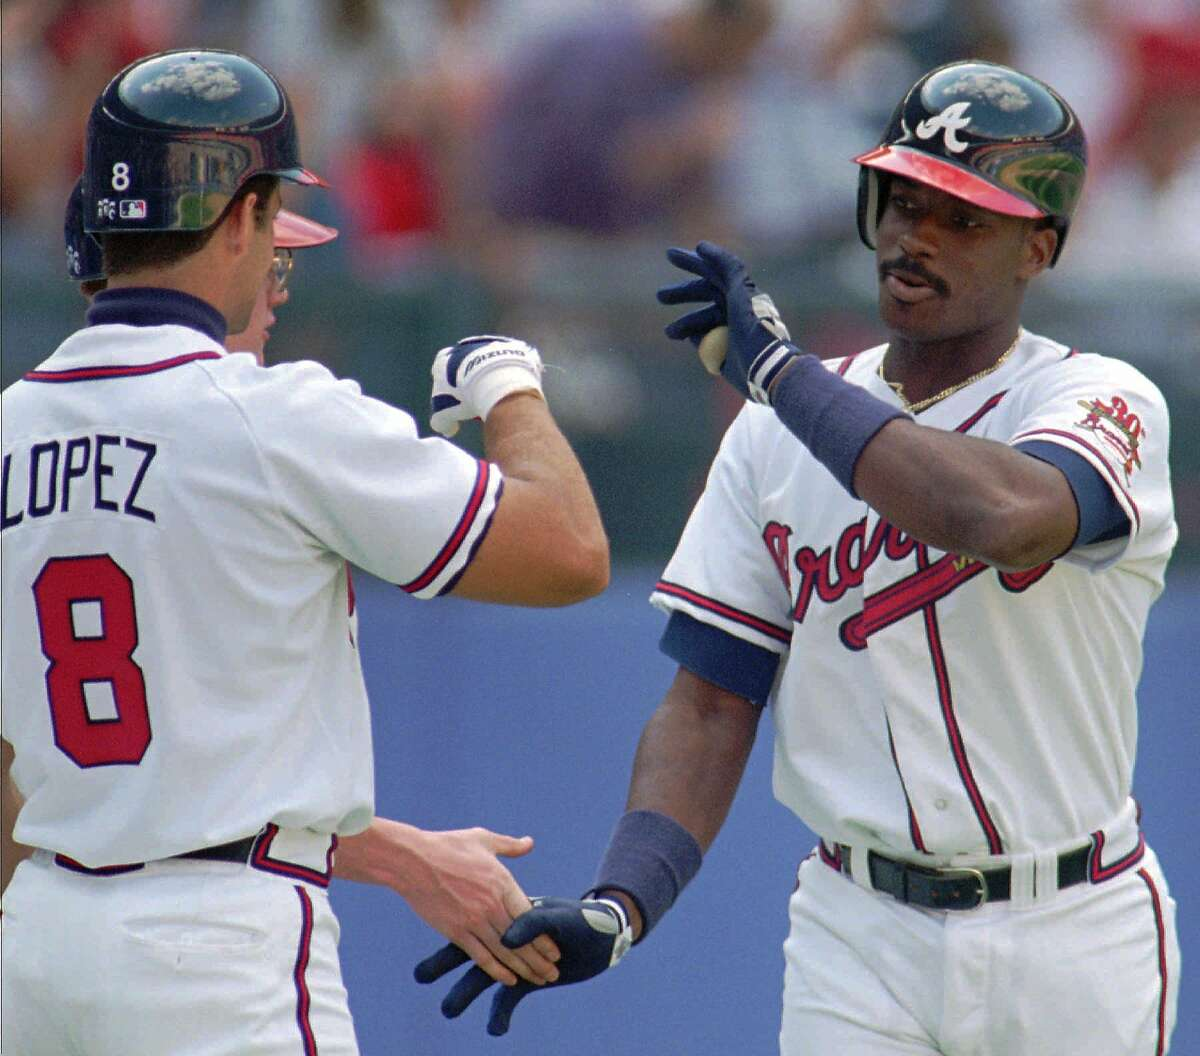 Atlanta Braves first baseman Fred McGriff, right, is congratulated by catcher Javier Lopez on his first homer of the season Wednesday, April 26, 1995 in Atlanta. The Braves defeated the San Francisco Giants 12-5 with McGriff getting two homers. (AP Photo/John Bazemore) ALSO Ran on: 07-29-2007 Fred McGriff went to the struggling Braves in a trade with the Padres in 1993 and helped his new team to a 104-win season. The 2007 Braves are looking hard at making a trade for the Rangers Mark Teixeira. Ran on: 07-29-2007